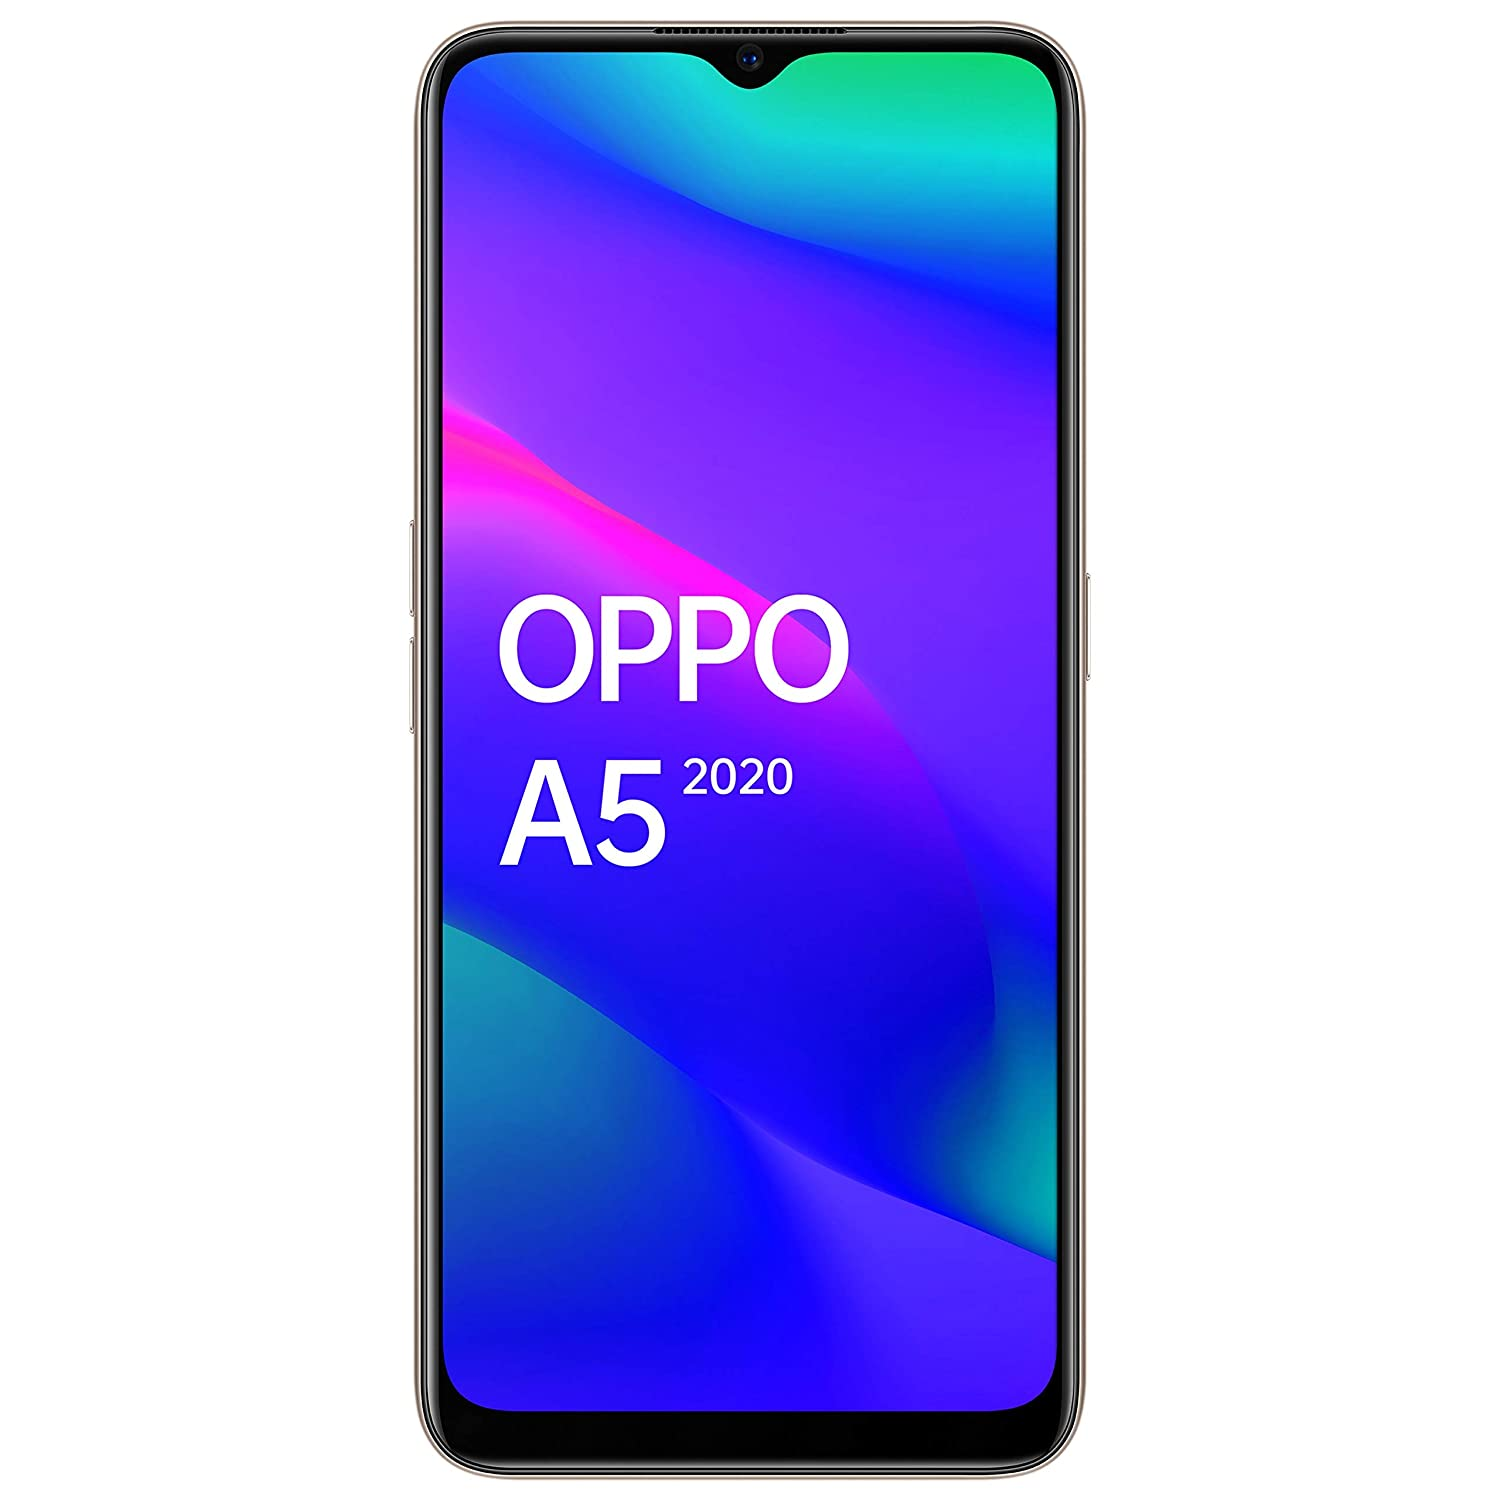 Best Mobile Under 20000 In India 2020 oppo-a5-2020